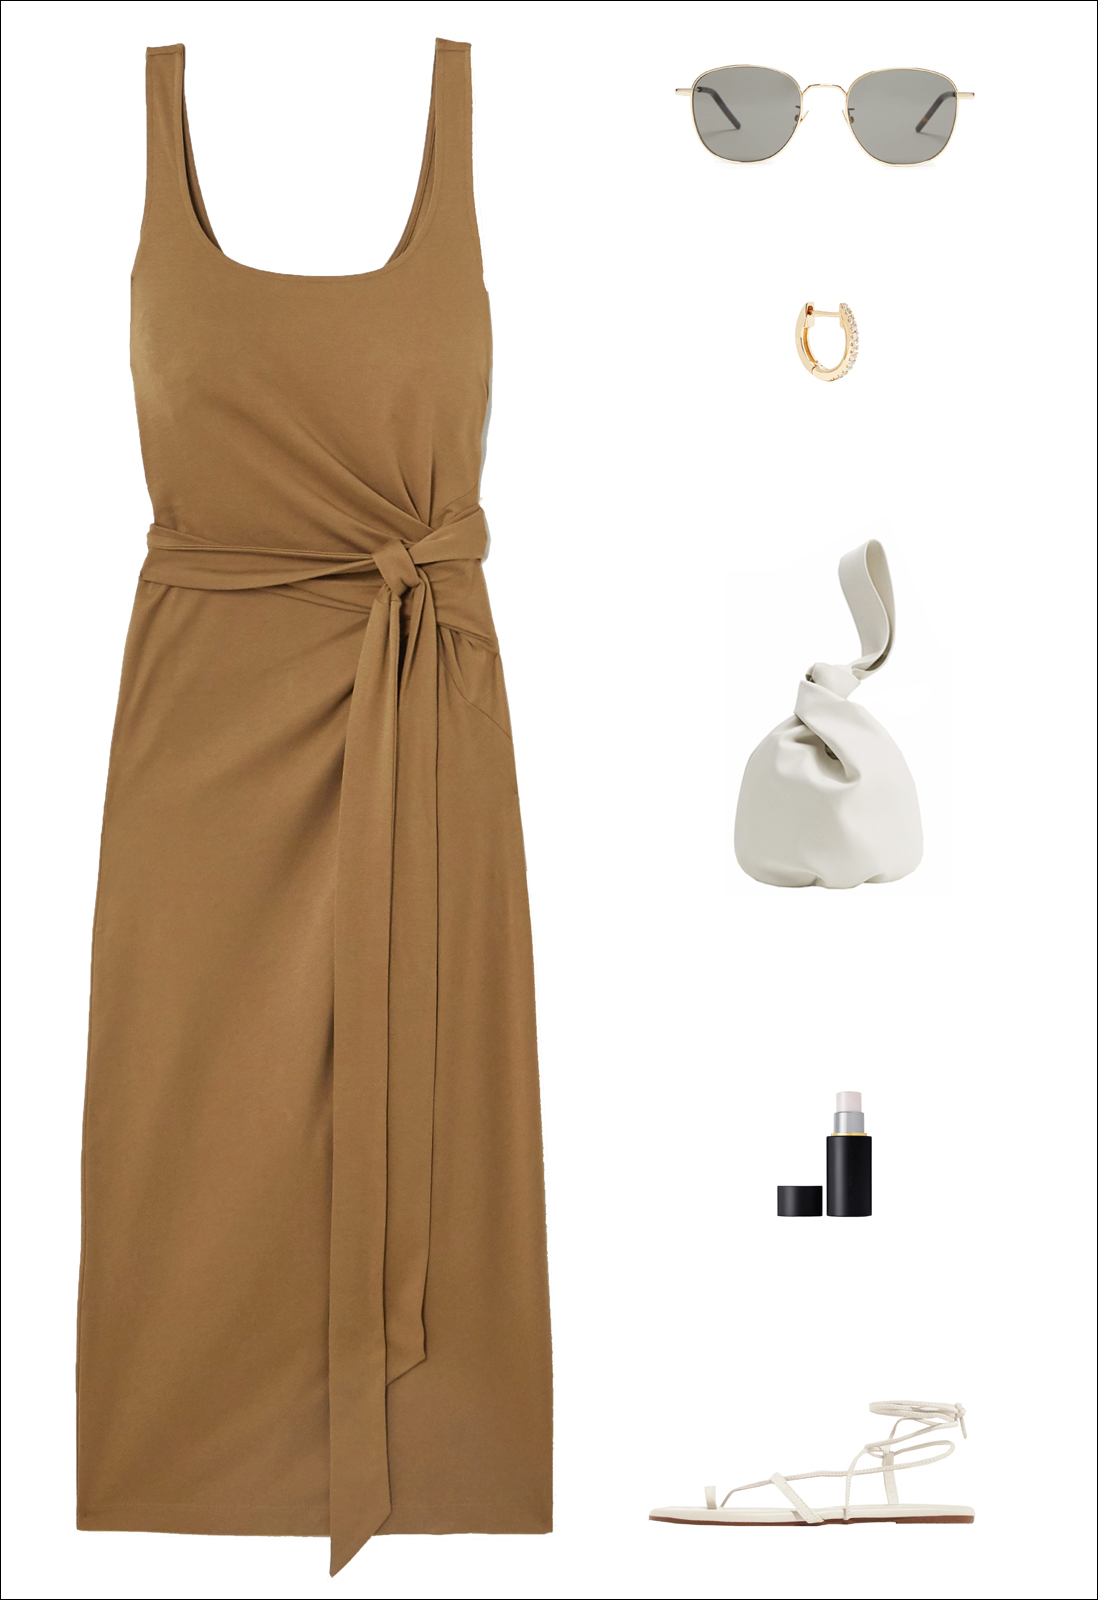 Stylish Summer Outfit Idea — sleeveless midi wrap dress, metal round sunglasses, diamond hoop earring, white mini bag, and white flat ankle-wrap lace-up sandals.